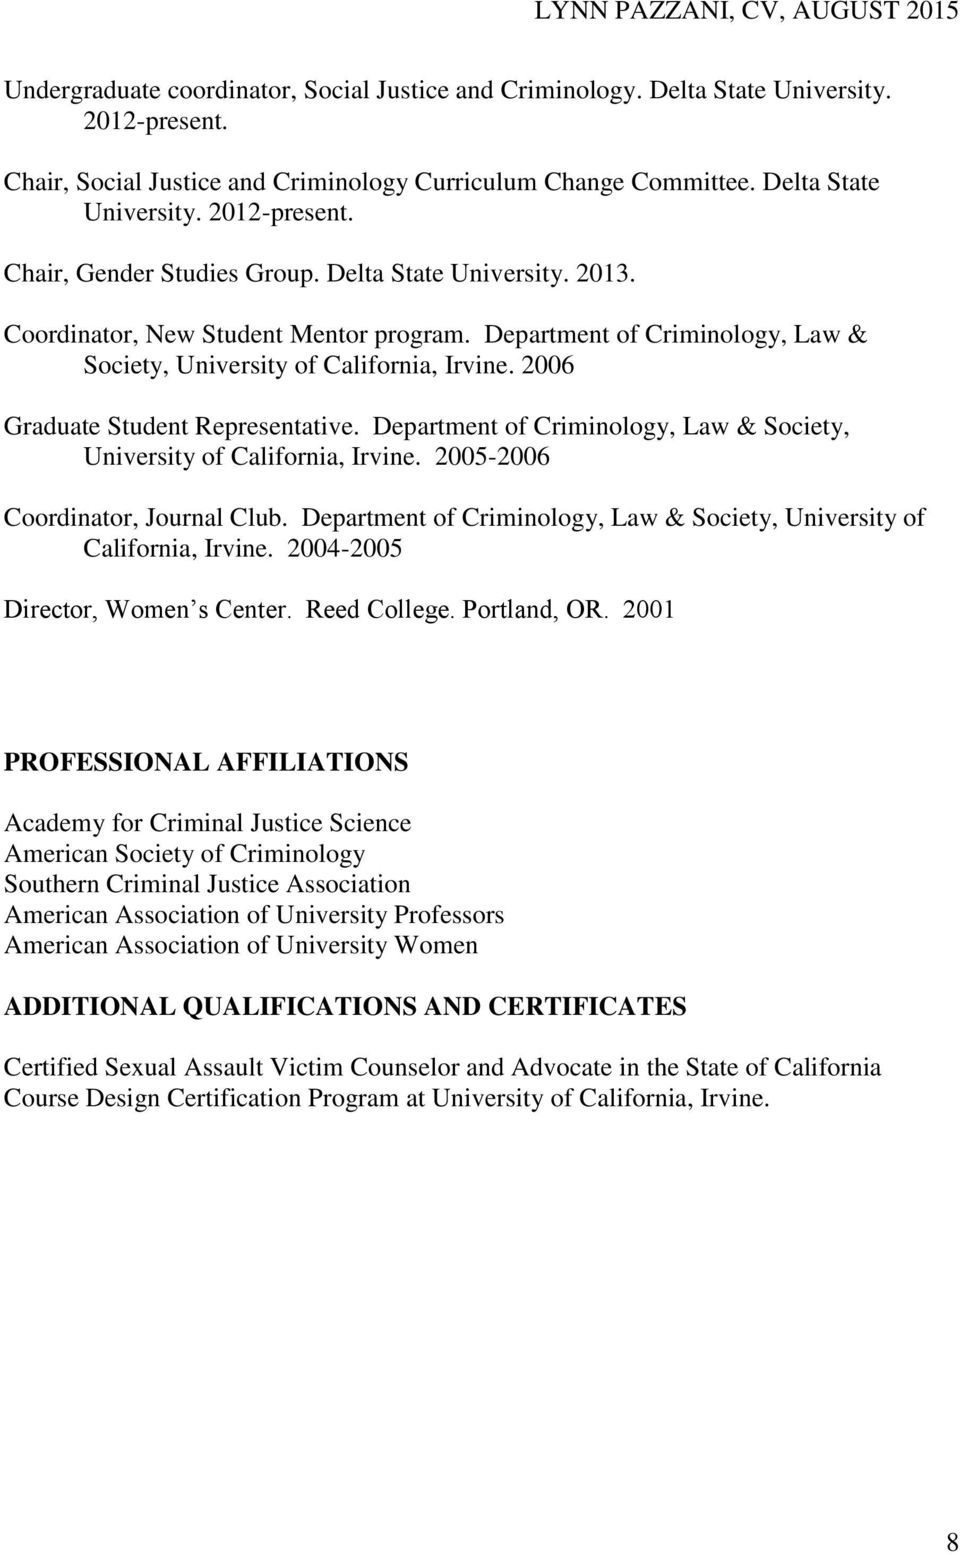 Department of Criminology, Law & Society, University of California, Irvine. 2005-2006 Coordinator, Journal Club. Department of Criminology, Law & Society, University of California, Irvine.